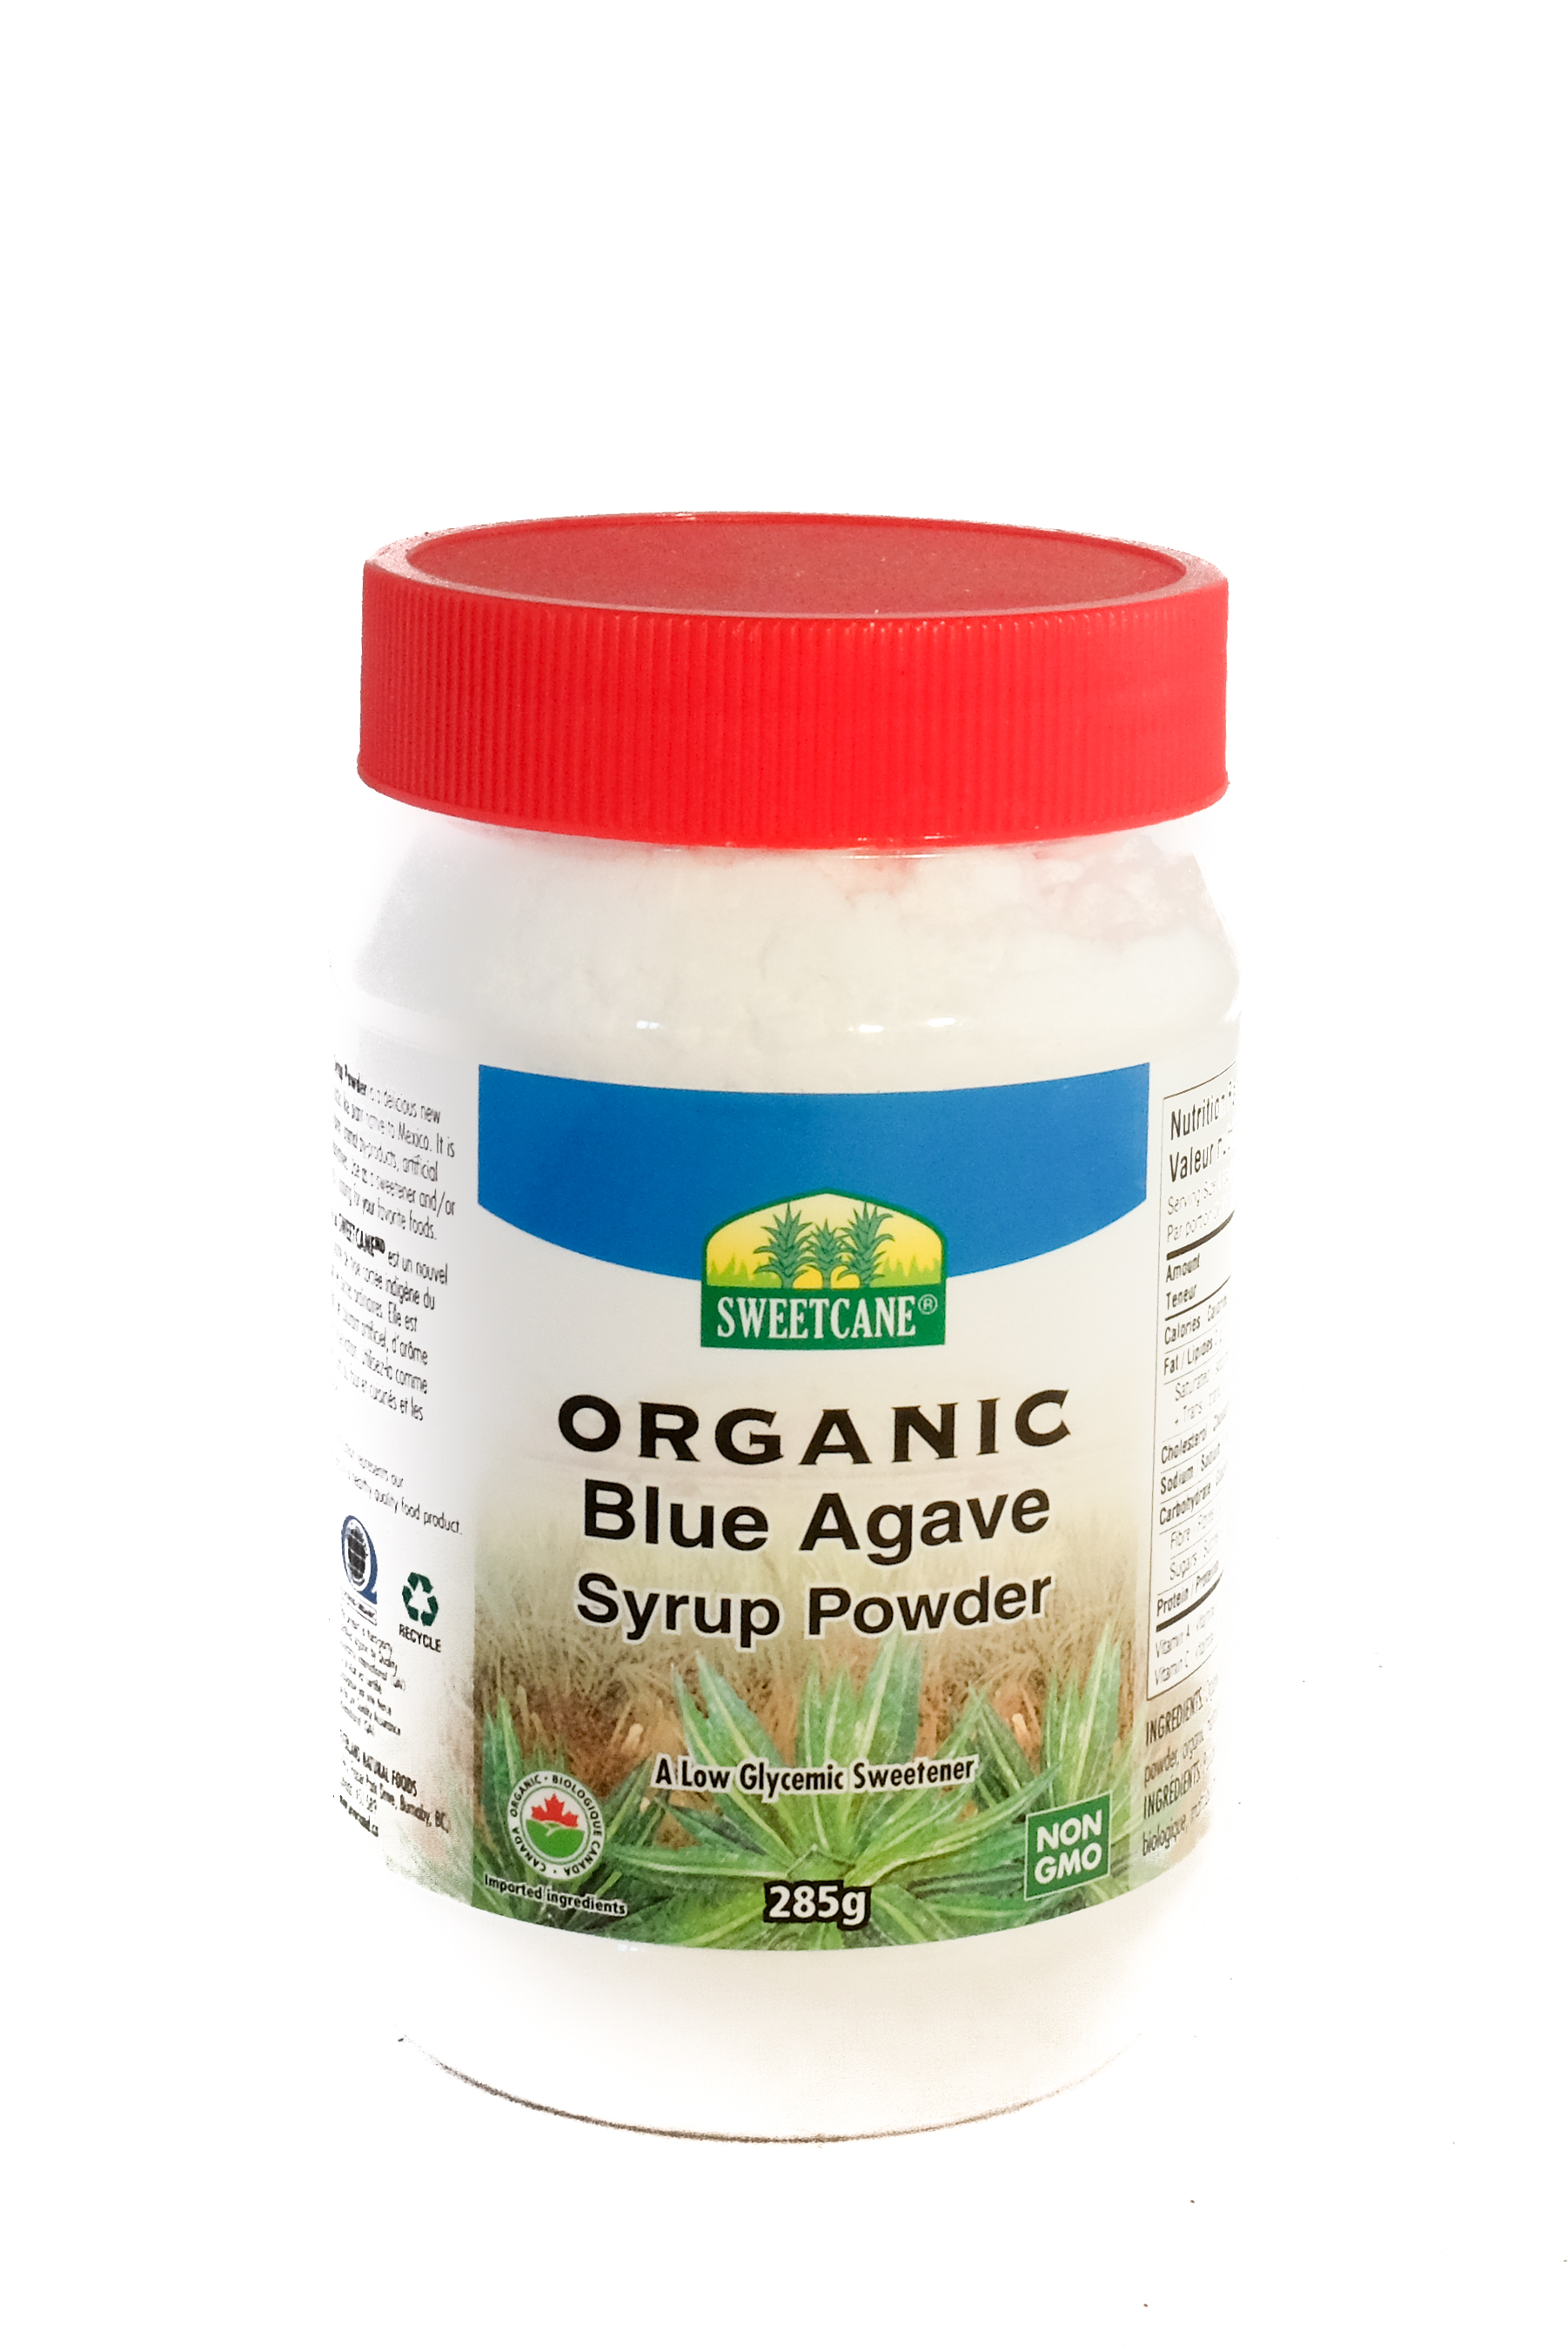 Organic Blue Agave Syrup Powder